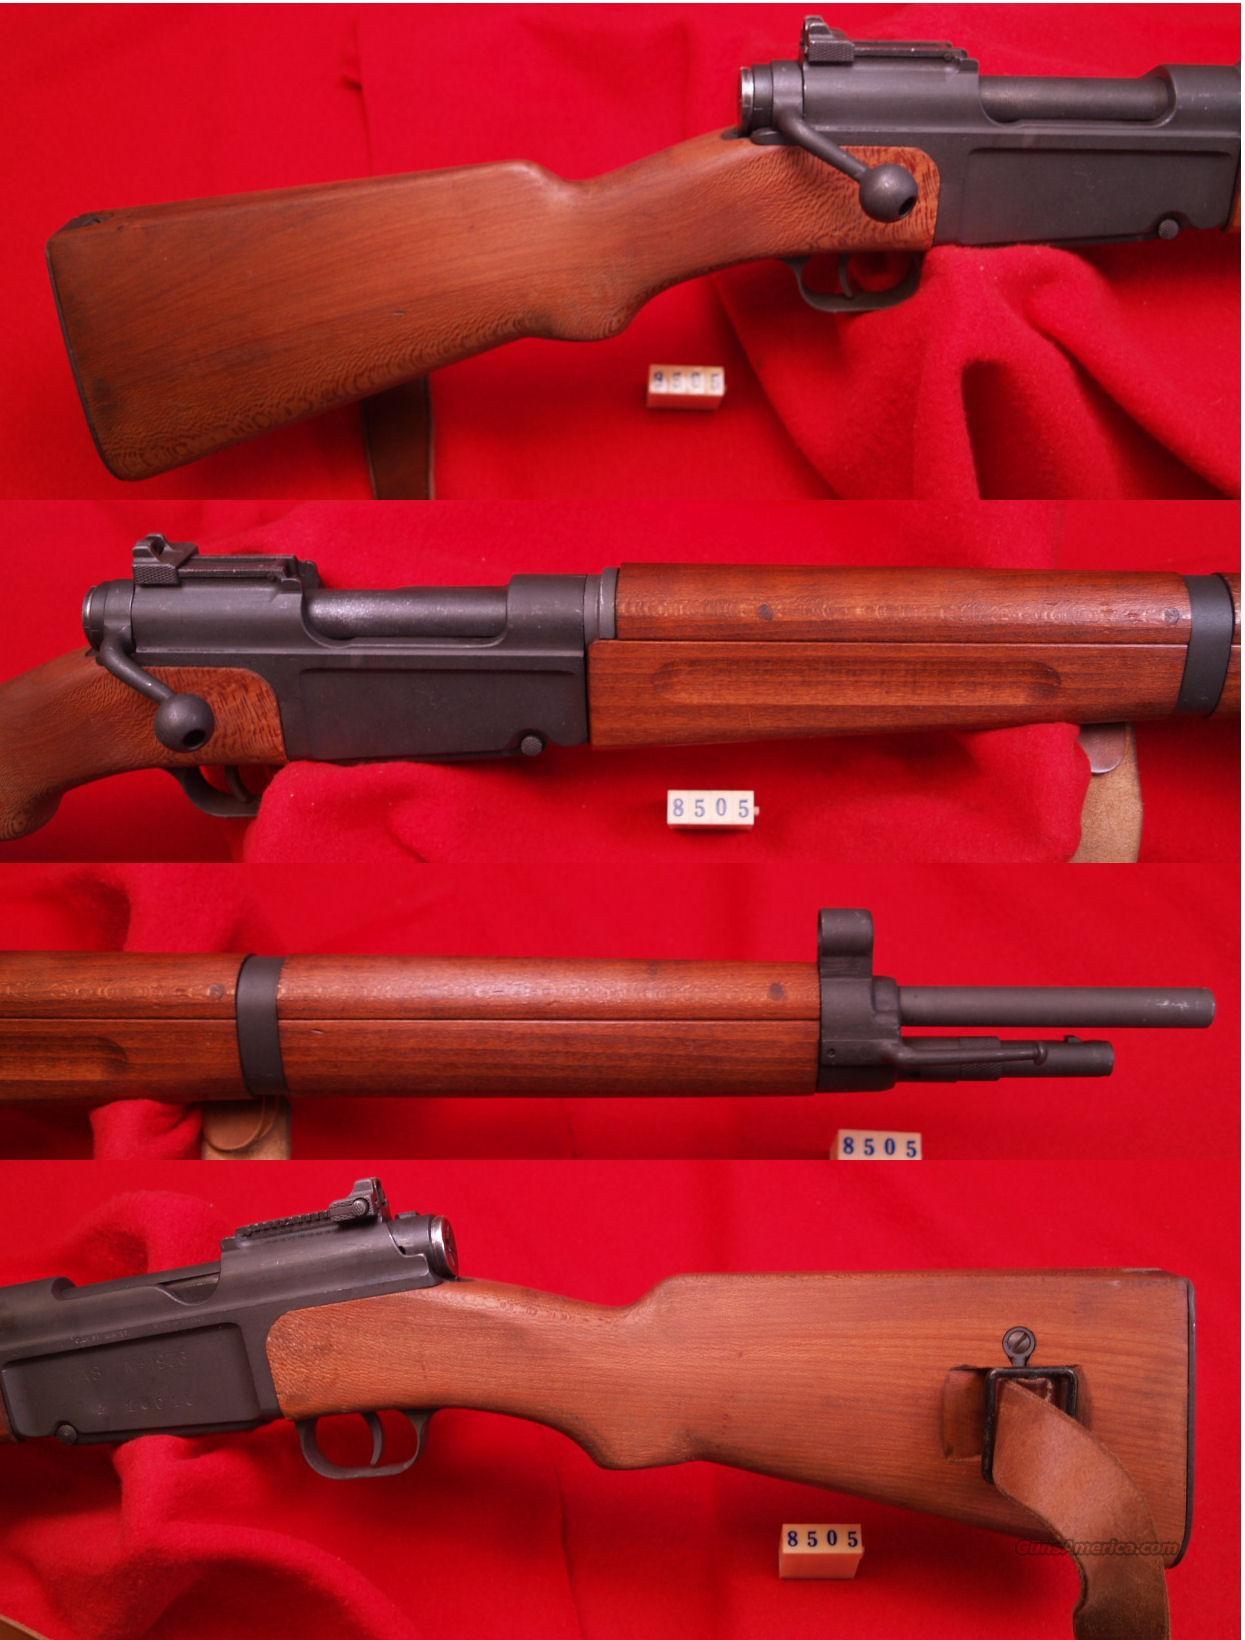 FRENCH MAS  1936  7.5 MAS  Guns > Rifles > Military Misc. Rifles Non-US > FrenchMAS